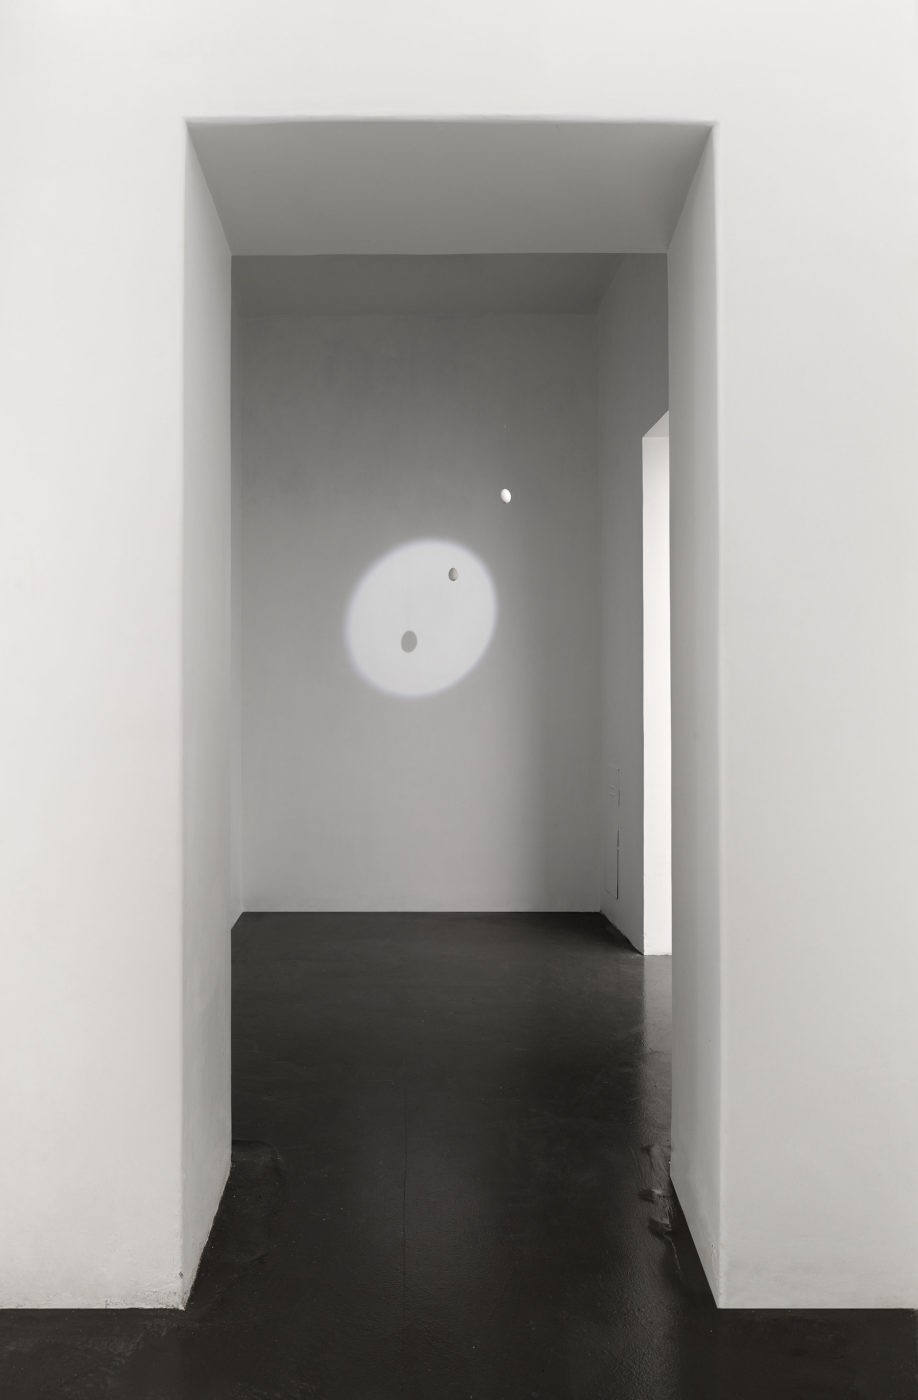 T293 - Sadie Coles HQ-in-residence: URS FISCHER - 1